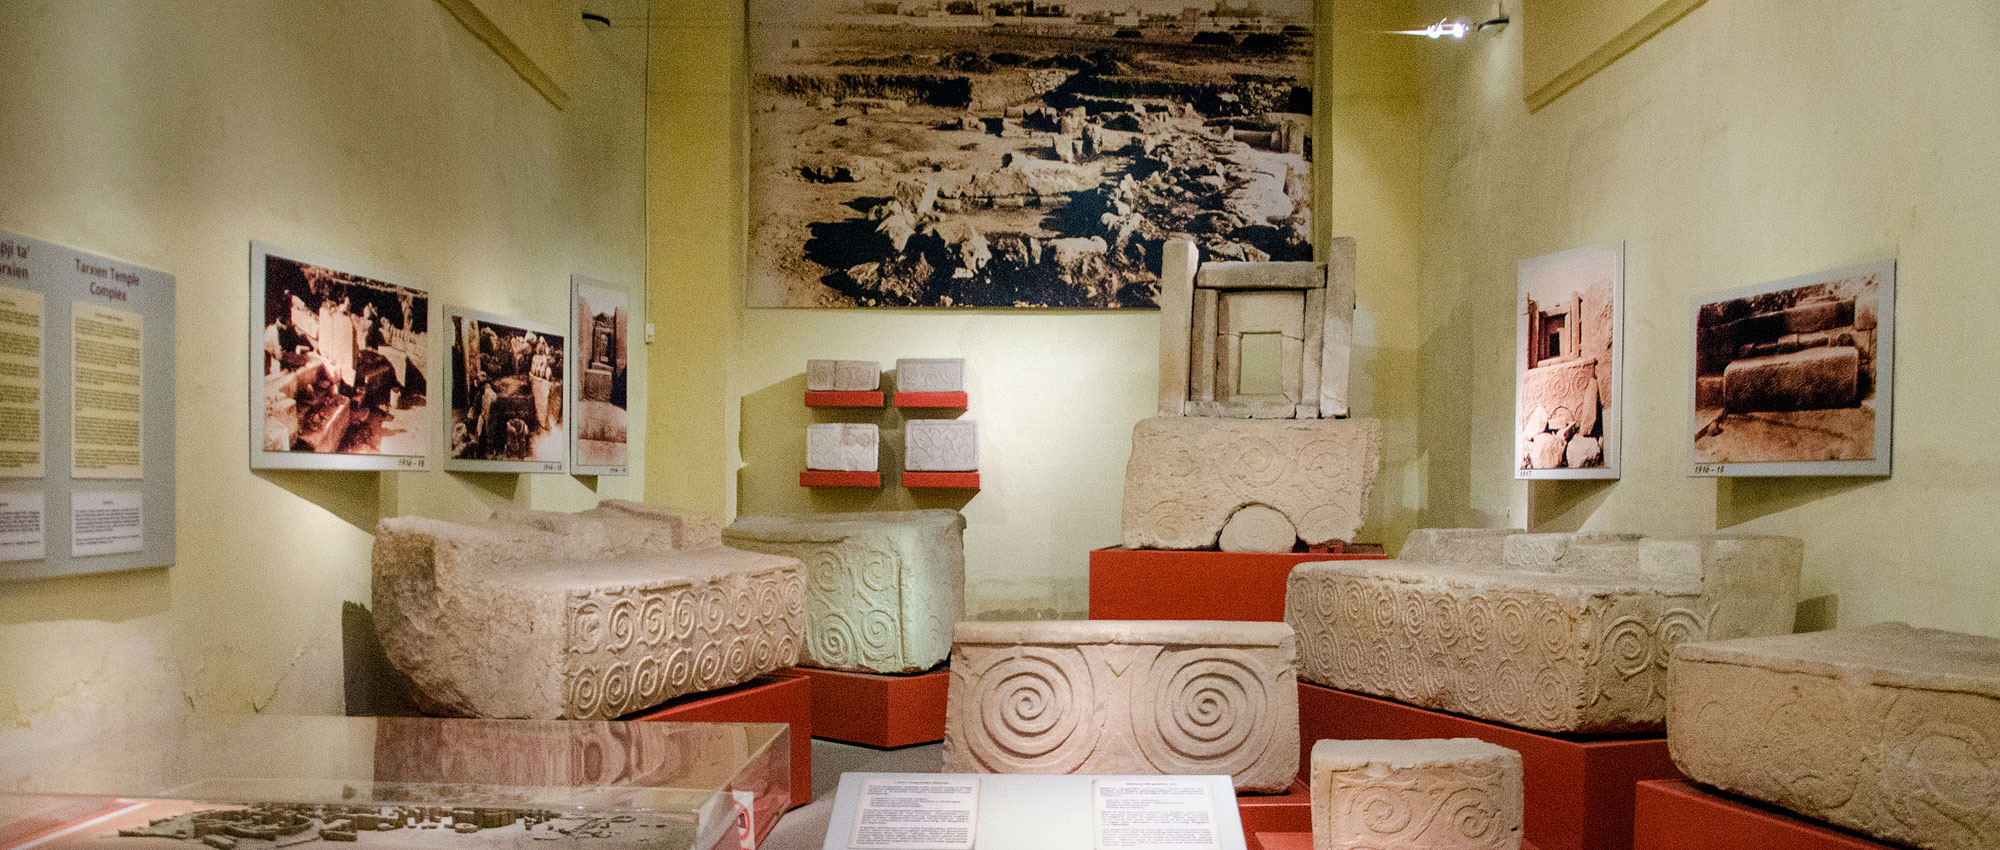 National Museum of Archaeology, Valletta